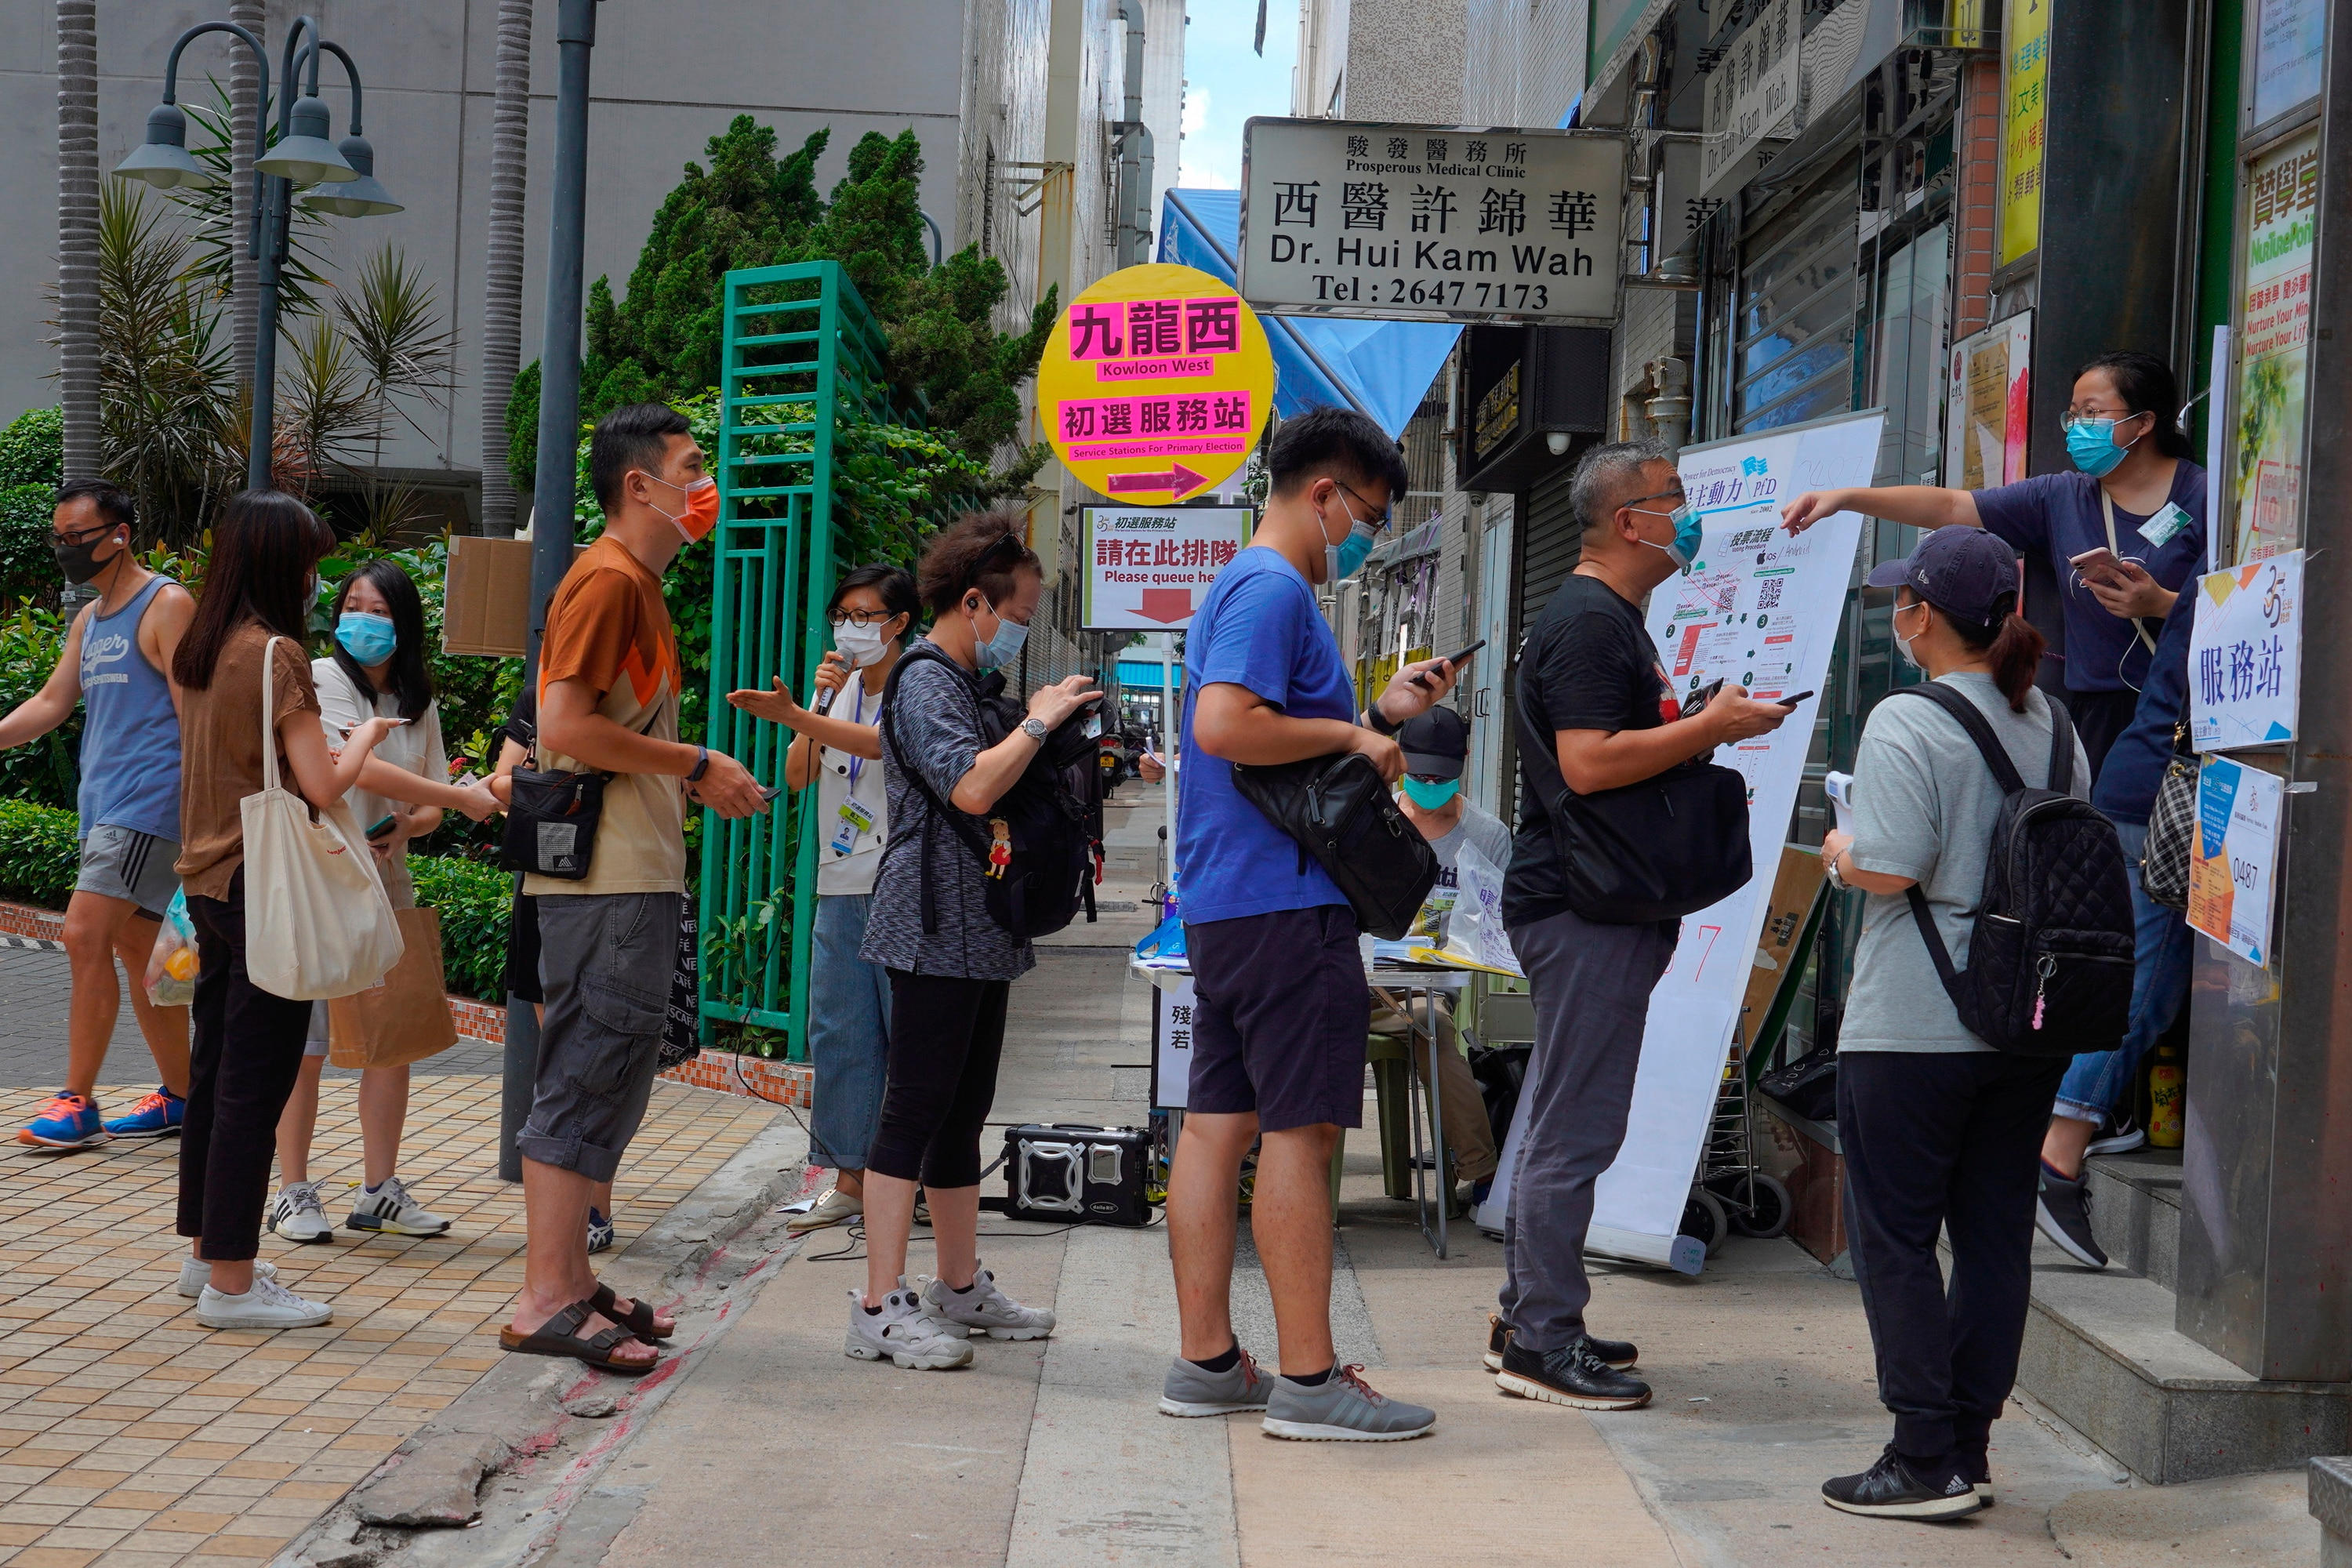 People queue up to vote in Hong Kong in an unofficial primary for pro-democracy candidates ahead of legislative elections in September.